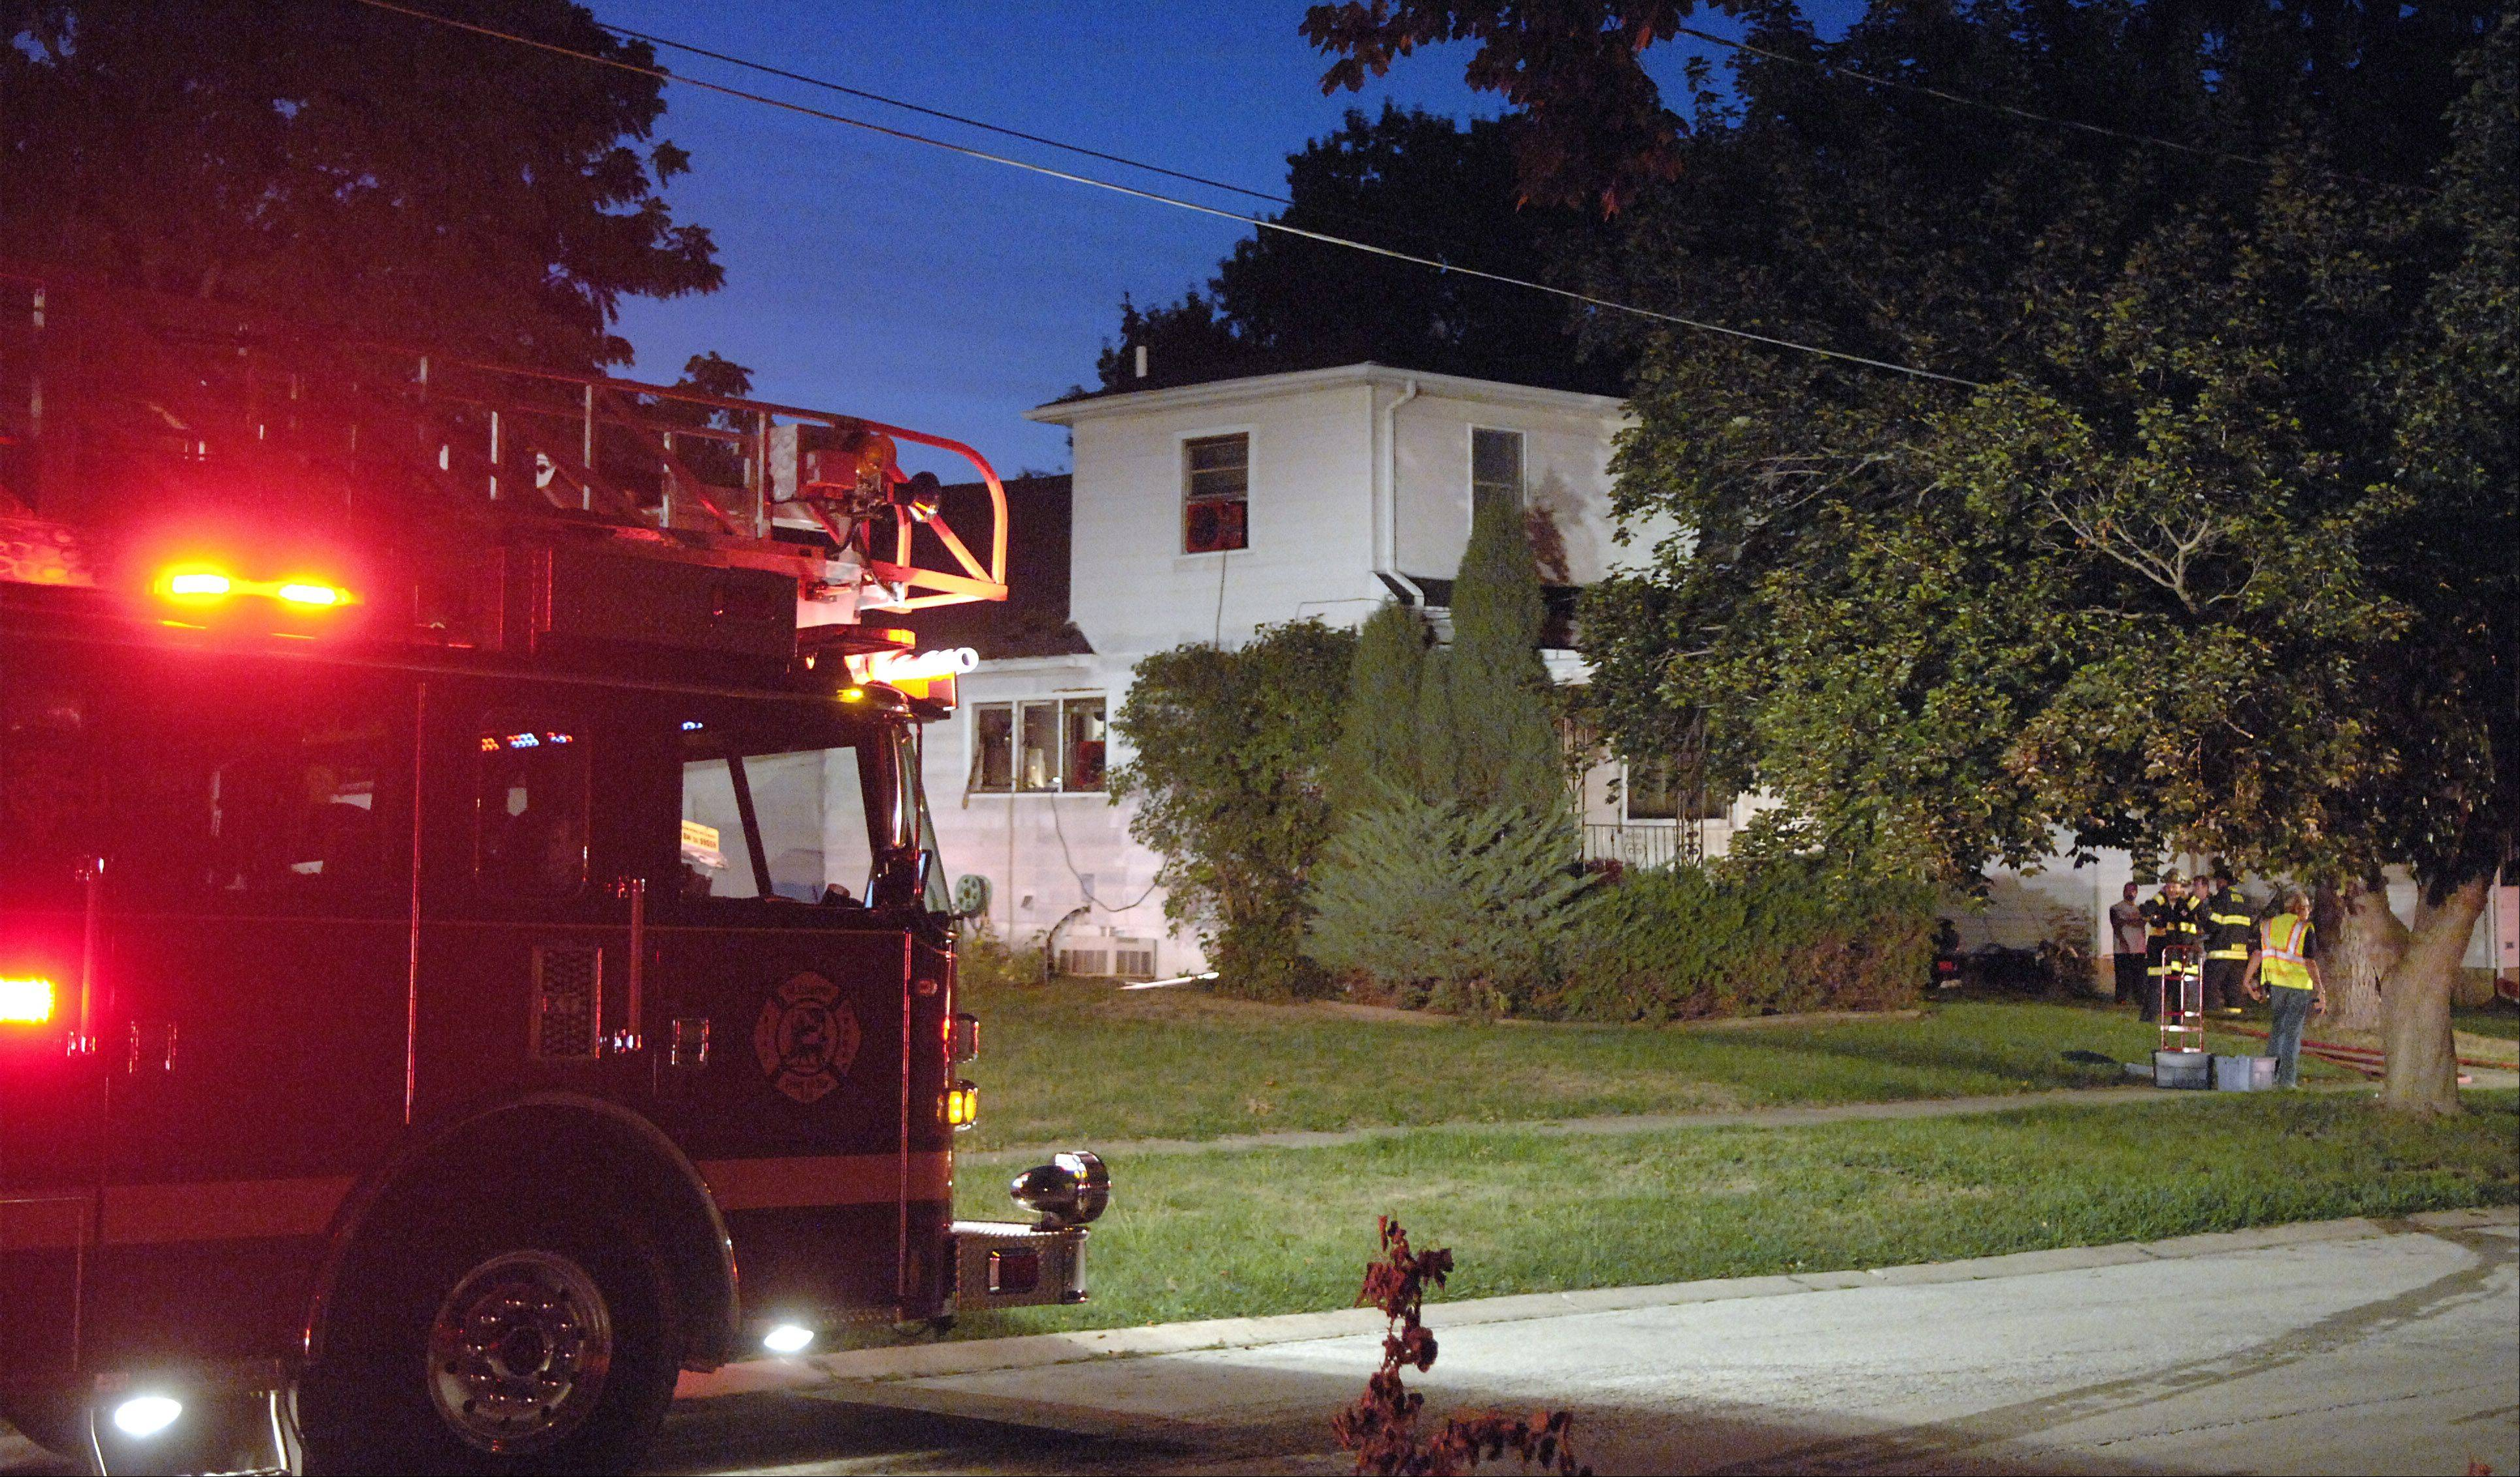 Several fire department units including St. Charles, Geneva, Batavia and South Elgin were called to the scene of a fire on the 0-100 block of North 12th Street in St. Charles Friday night. No injuries were reported, but the home was left uninhabitable.